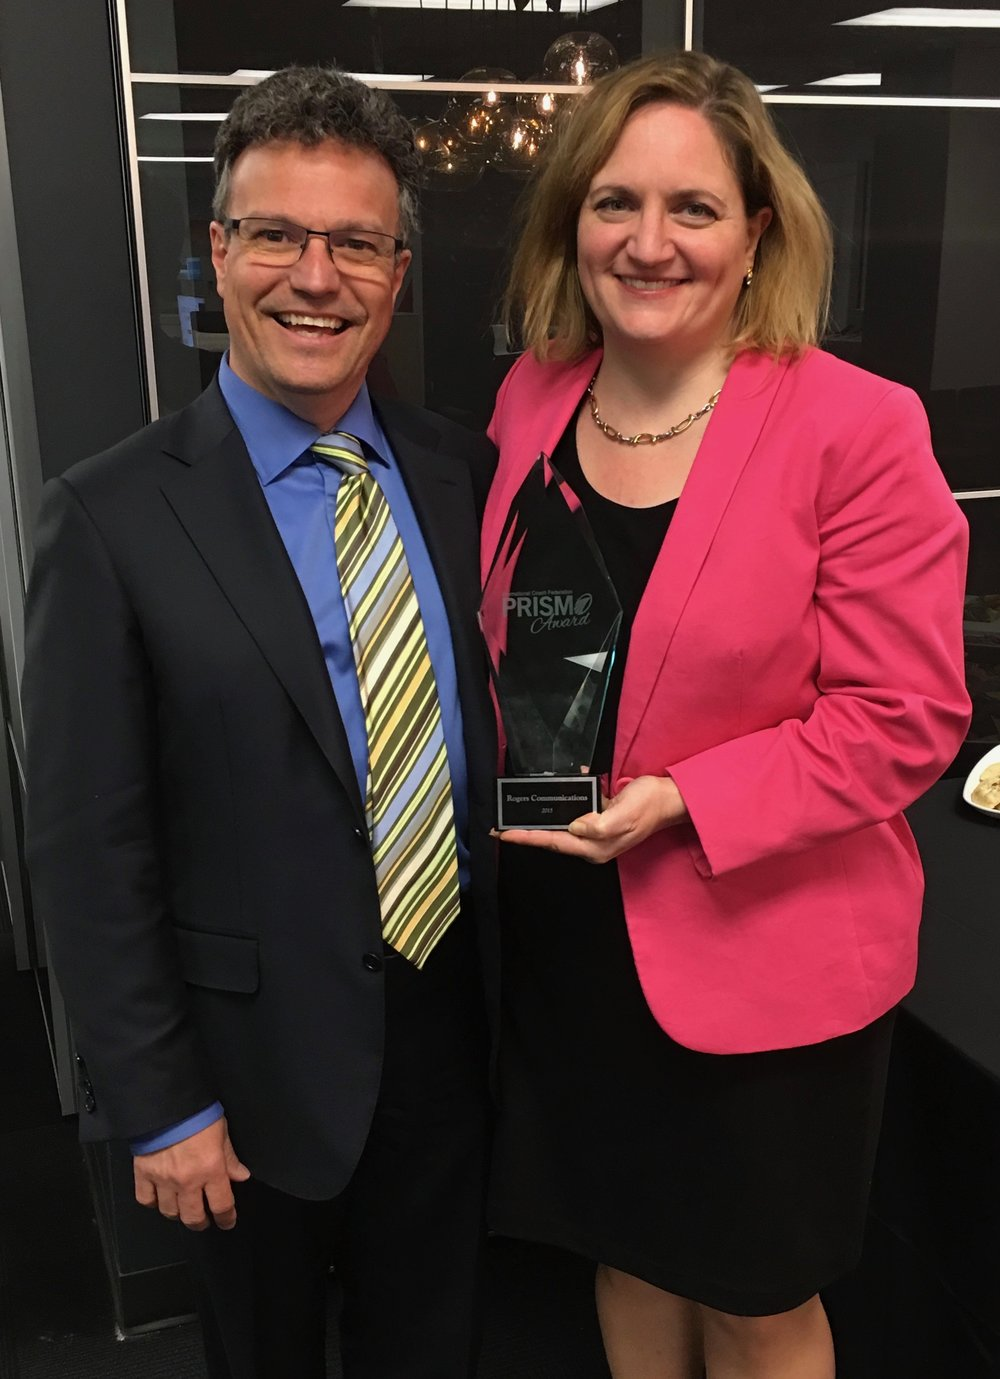 2015 Global Prism Award - Rogers Communications.  A great privilege to  participate in this world class  coaching program covering   more than 600 director level leaders. Photo with Prism winner  Silvia Lulka, Director at Rogers; and coach extraordinaire!  And it's only the beginning.  Work continues as we train and coach 2500 more leaders at the next level to become great coaches.